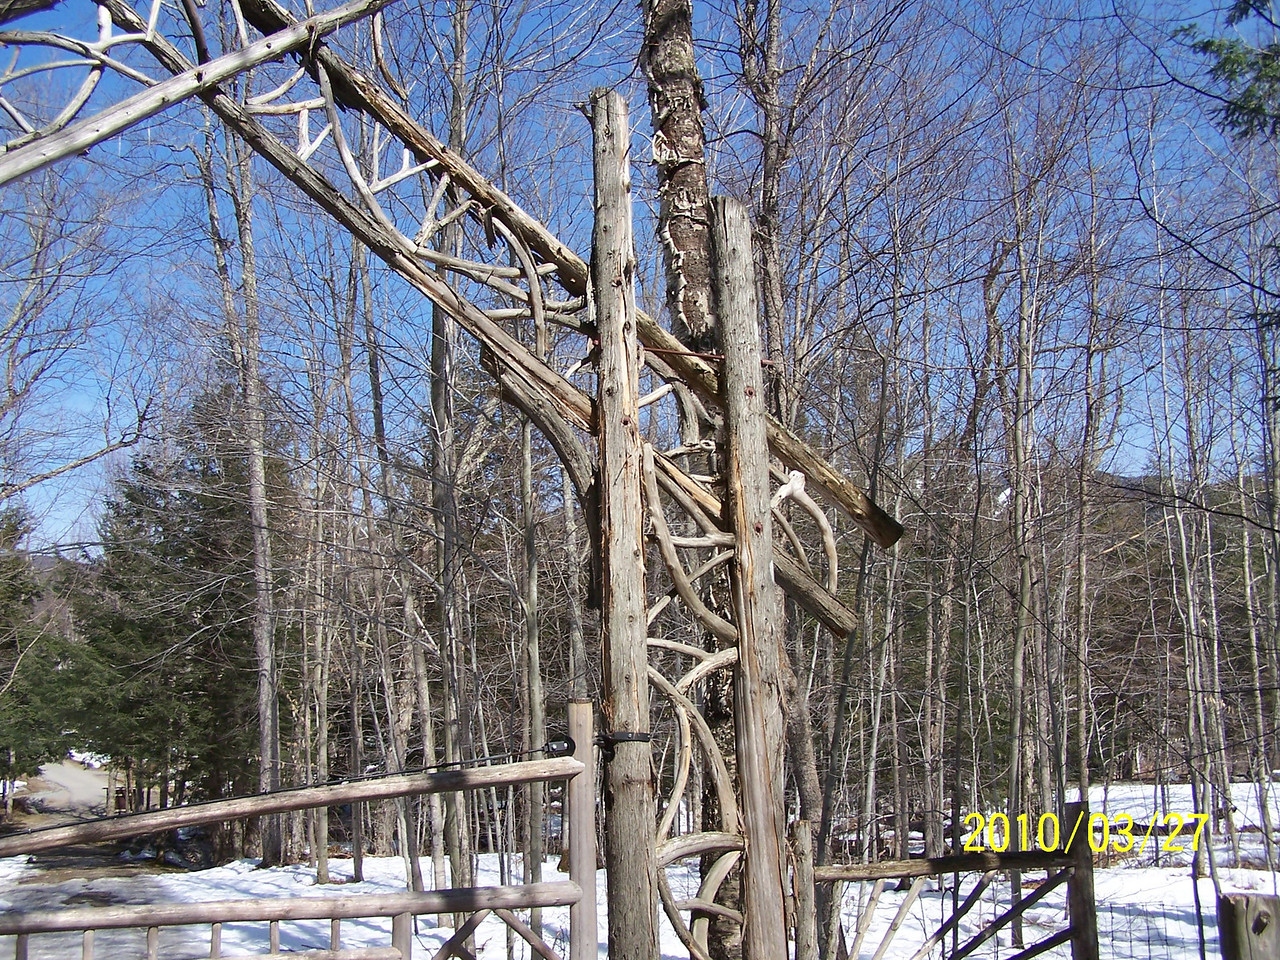 When, in 1887, it became known that the woods around Beede's was going to be timbered by the lumber company which owned them, a prominent Philadelphia mining engineer, William G. Neilson, joined with several friends to purchase 25,000 acres (100 km2), including the two lakes and nearby mountains, thus forming the AMR. Although the Reserve prohibited hunting and camping, the land remained open to the public for hiking. The AMR added to its holdings, reaching a peak of 40,000 acres (160 km2) in 1910. However, in 1933 and again in 1978, land was sold to the state of New York as part of the Adirondack Park, so that present holdings amount to about 7,000 acres (28 km2).